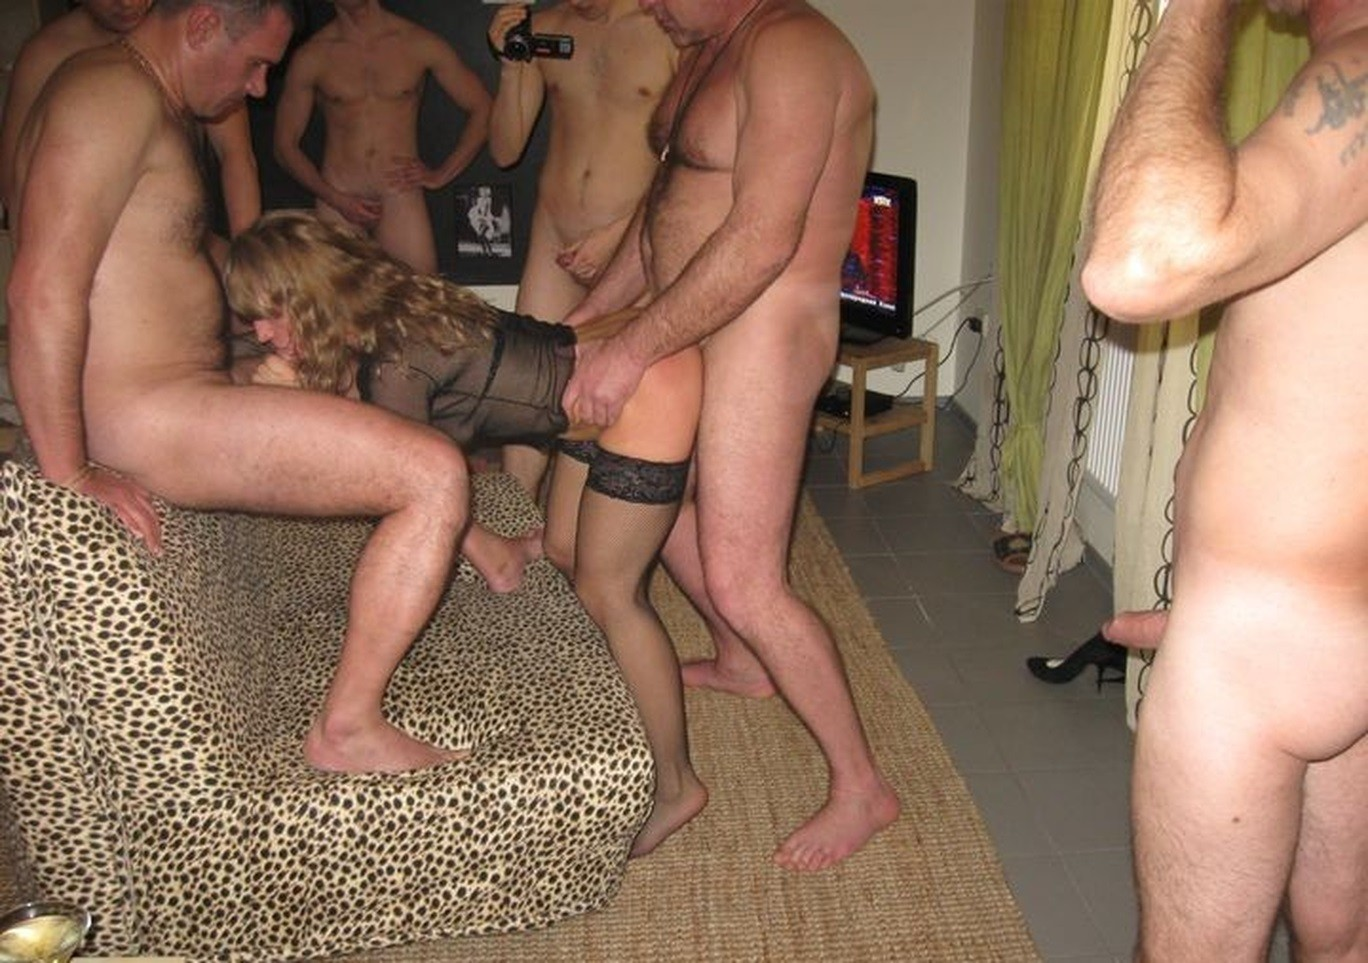 Amateur wife gangbanged by black men on her anniversary 2